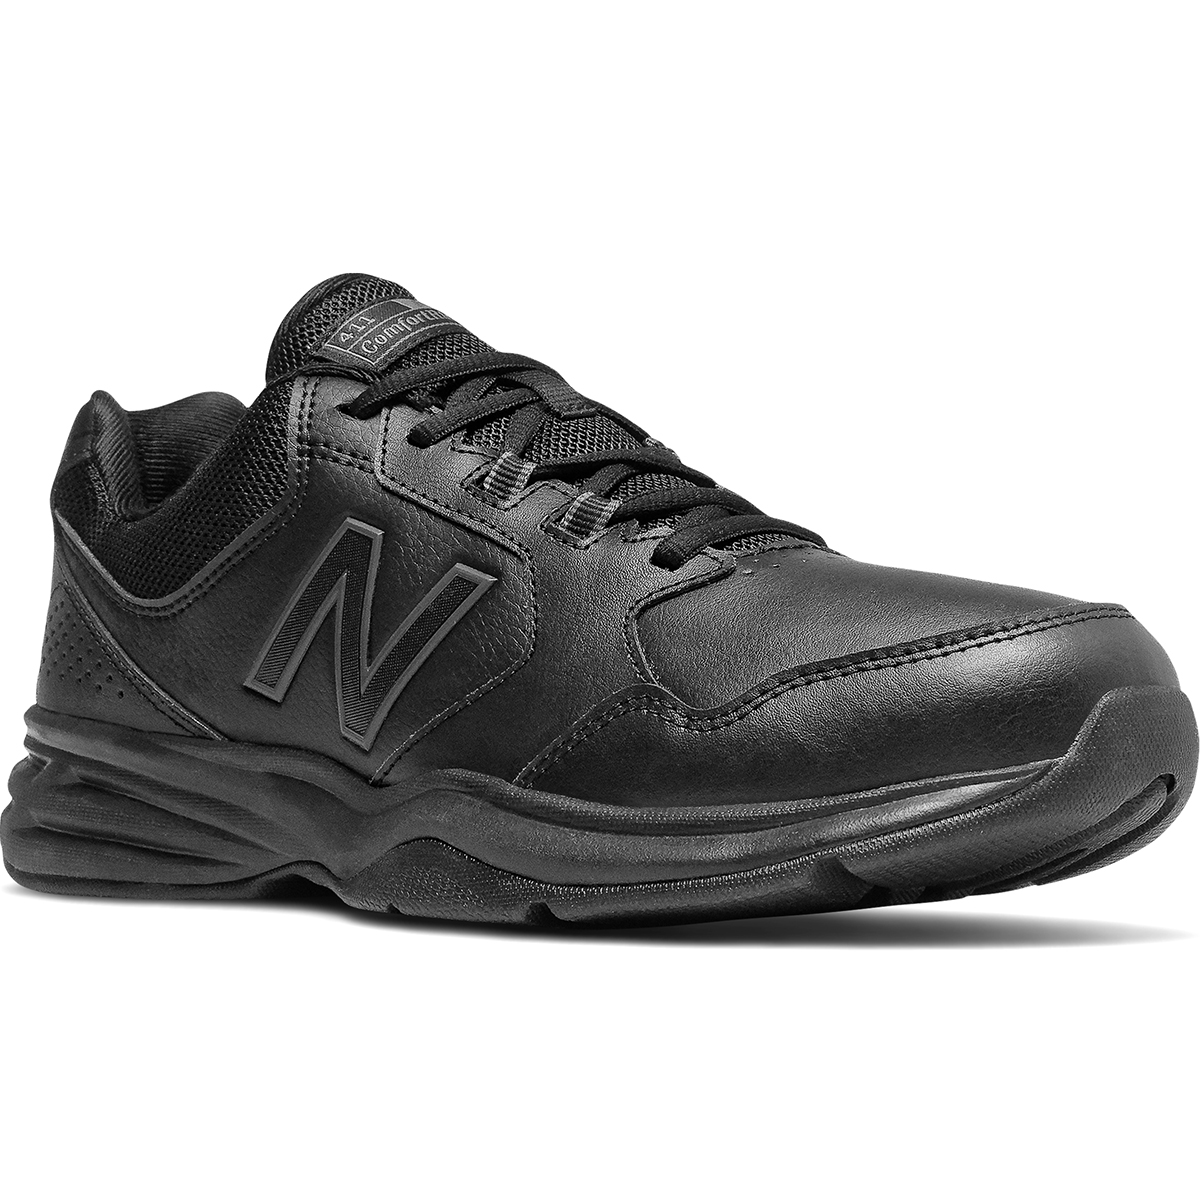 New Balance Men's 411 Walking Shoes, Wide - Black, 11.5